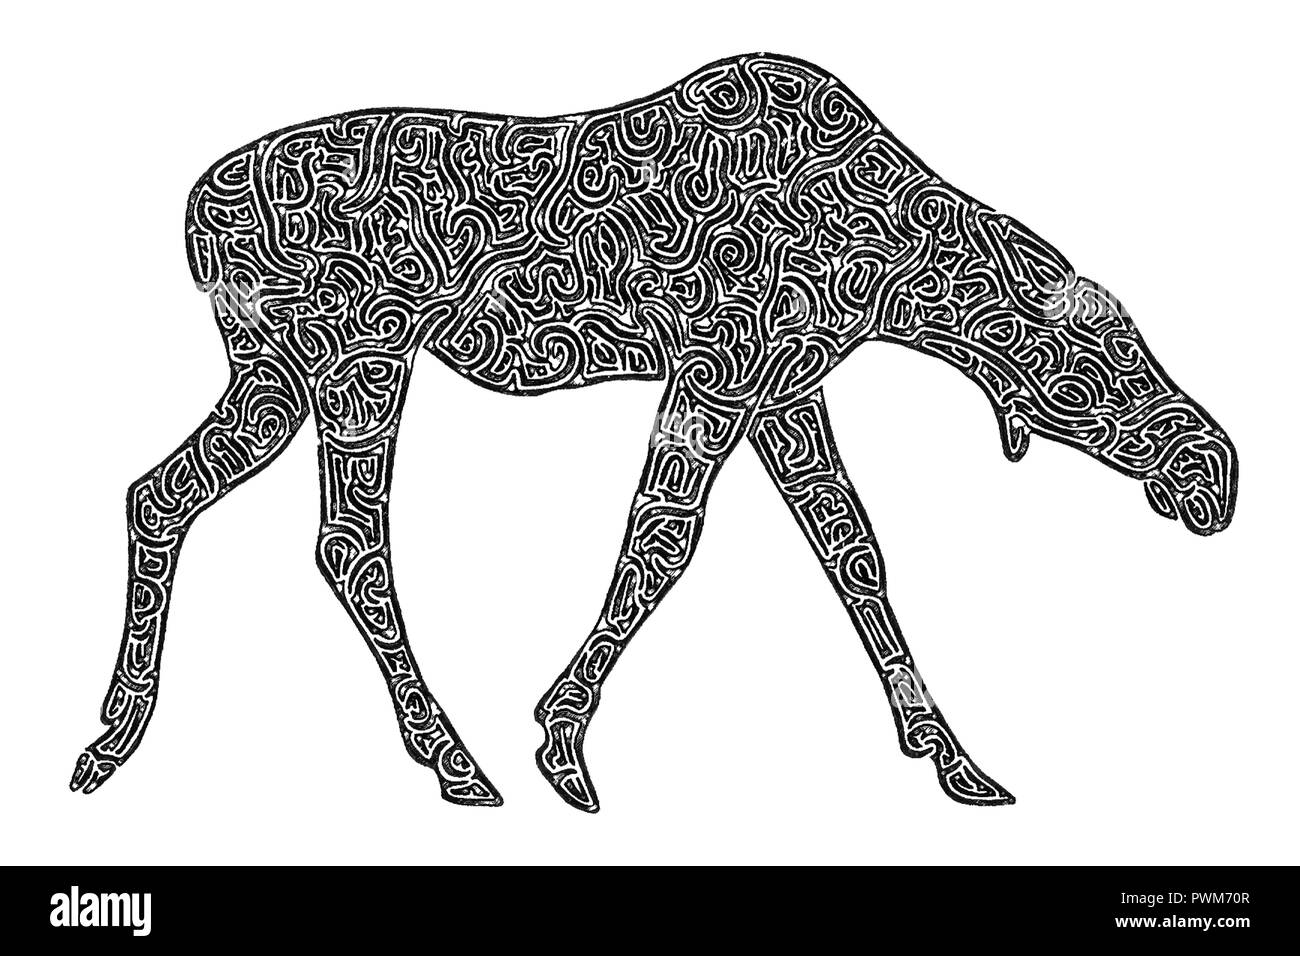 Illustration of a female moose, black and white, drawing, maze lines - Stock Image